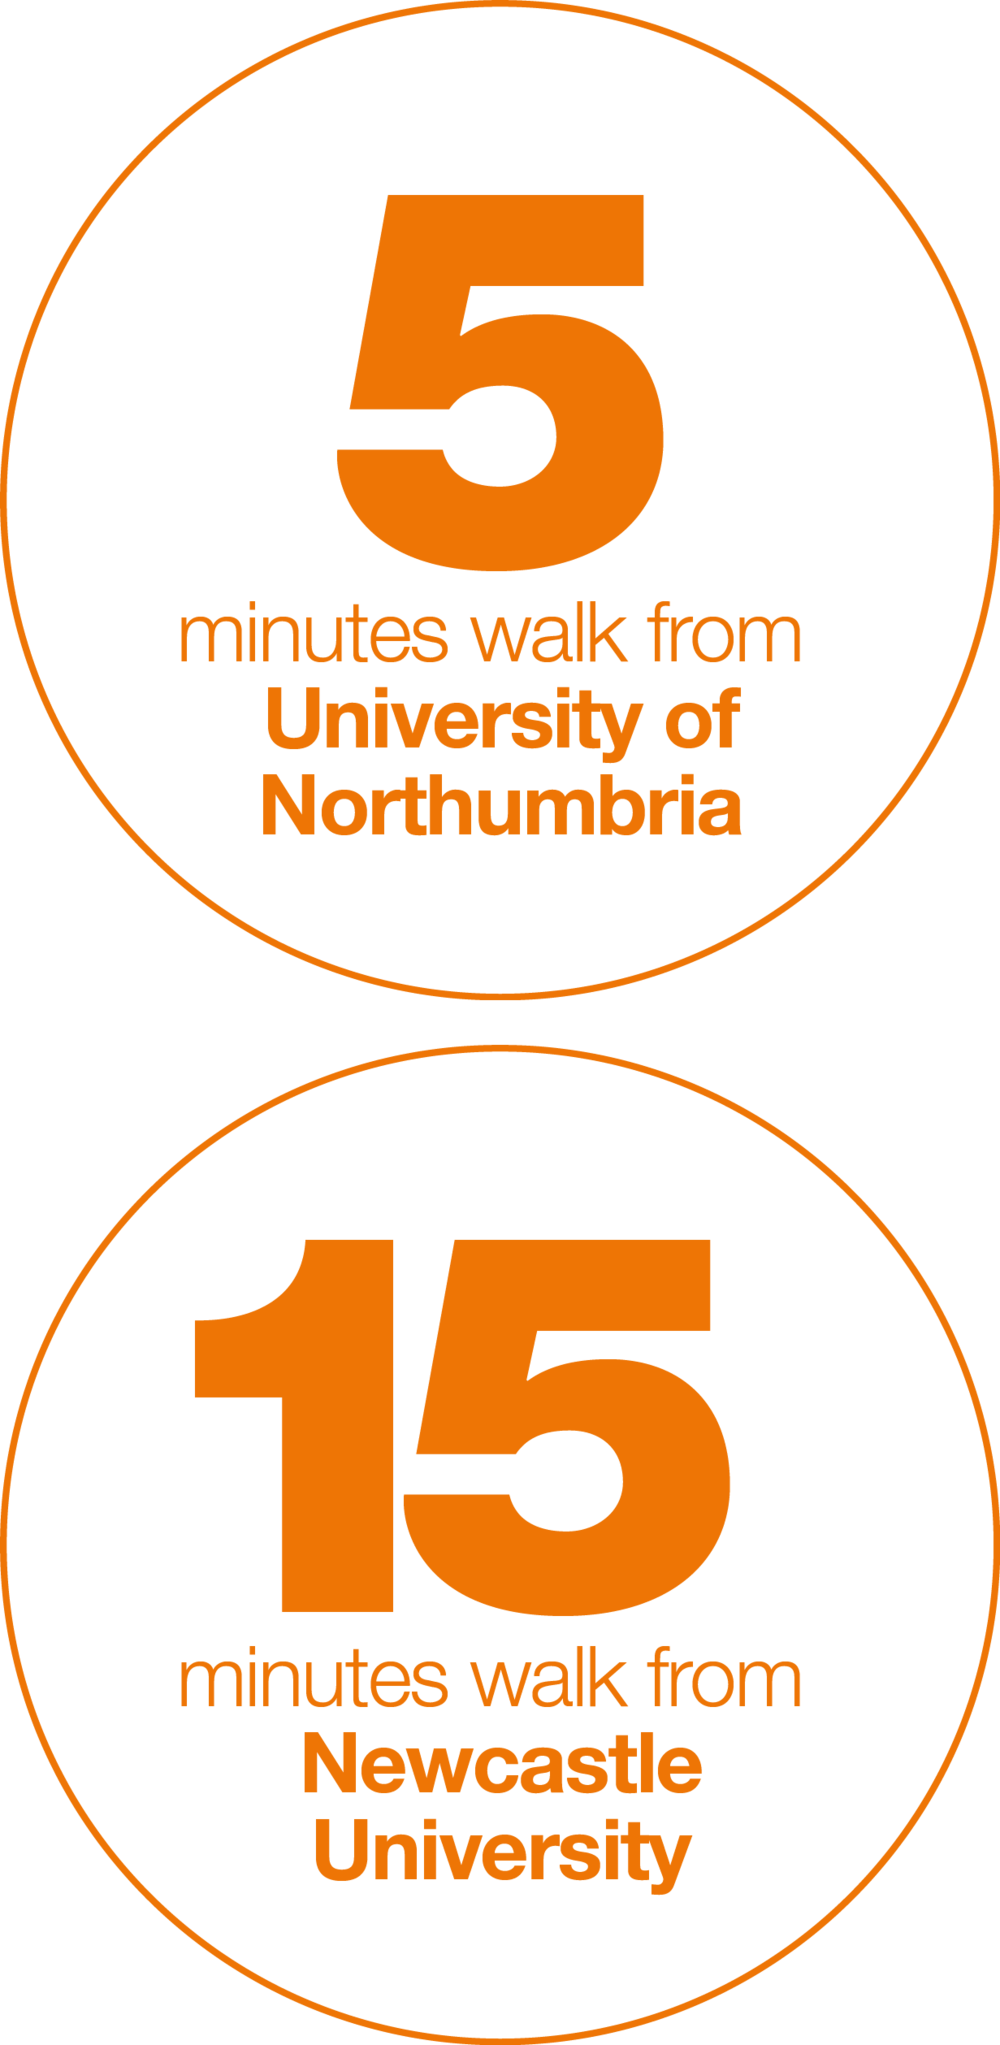 15 minutes walk from Newcastle University